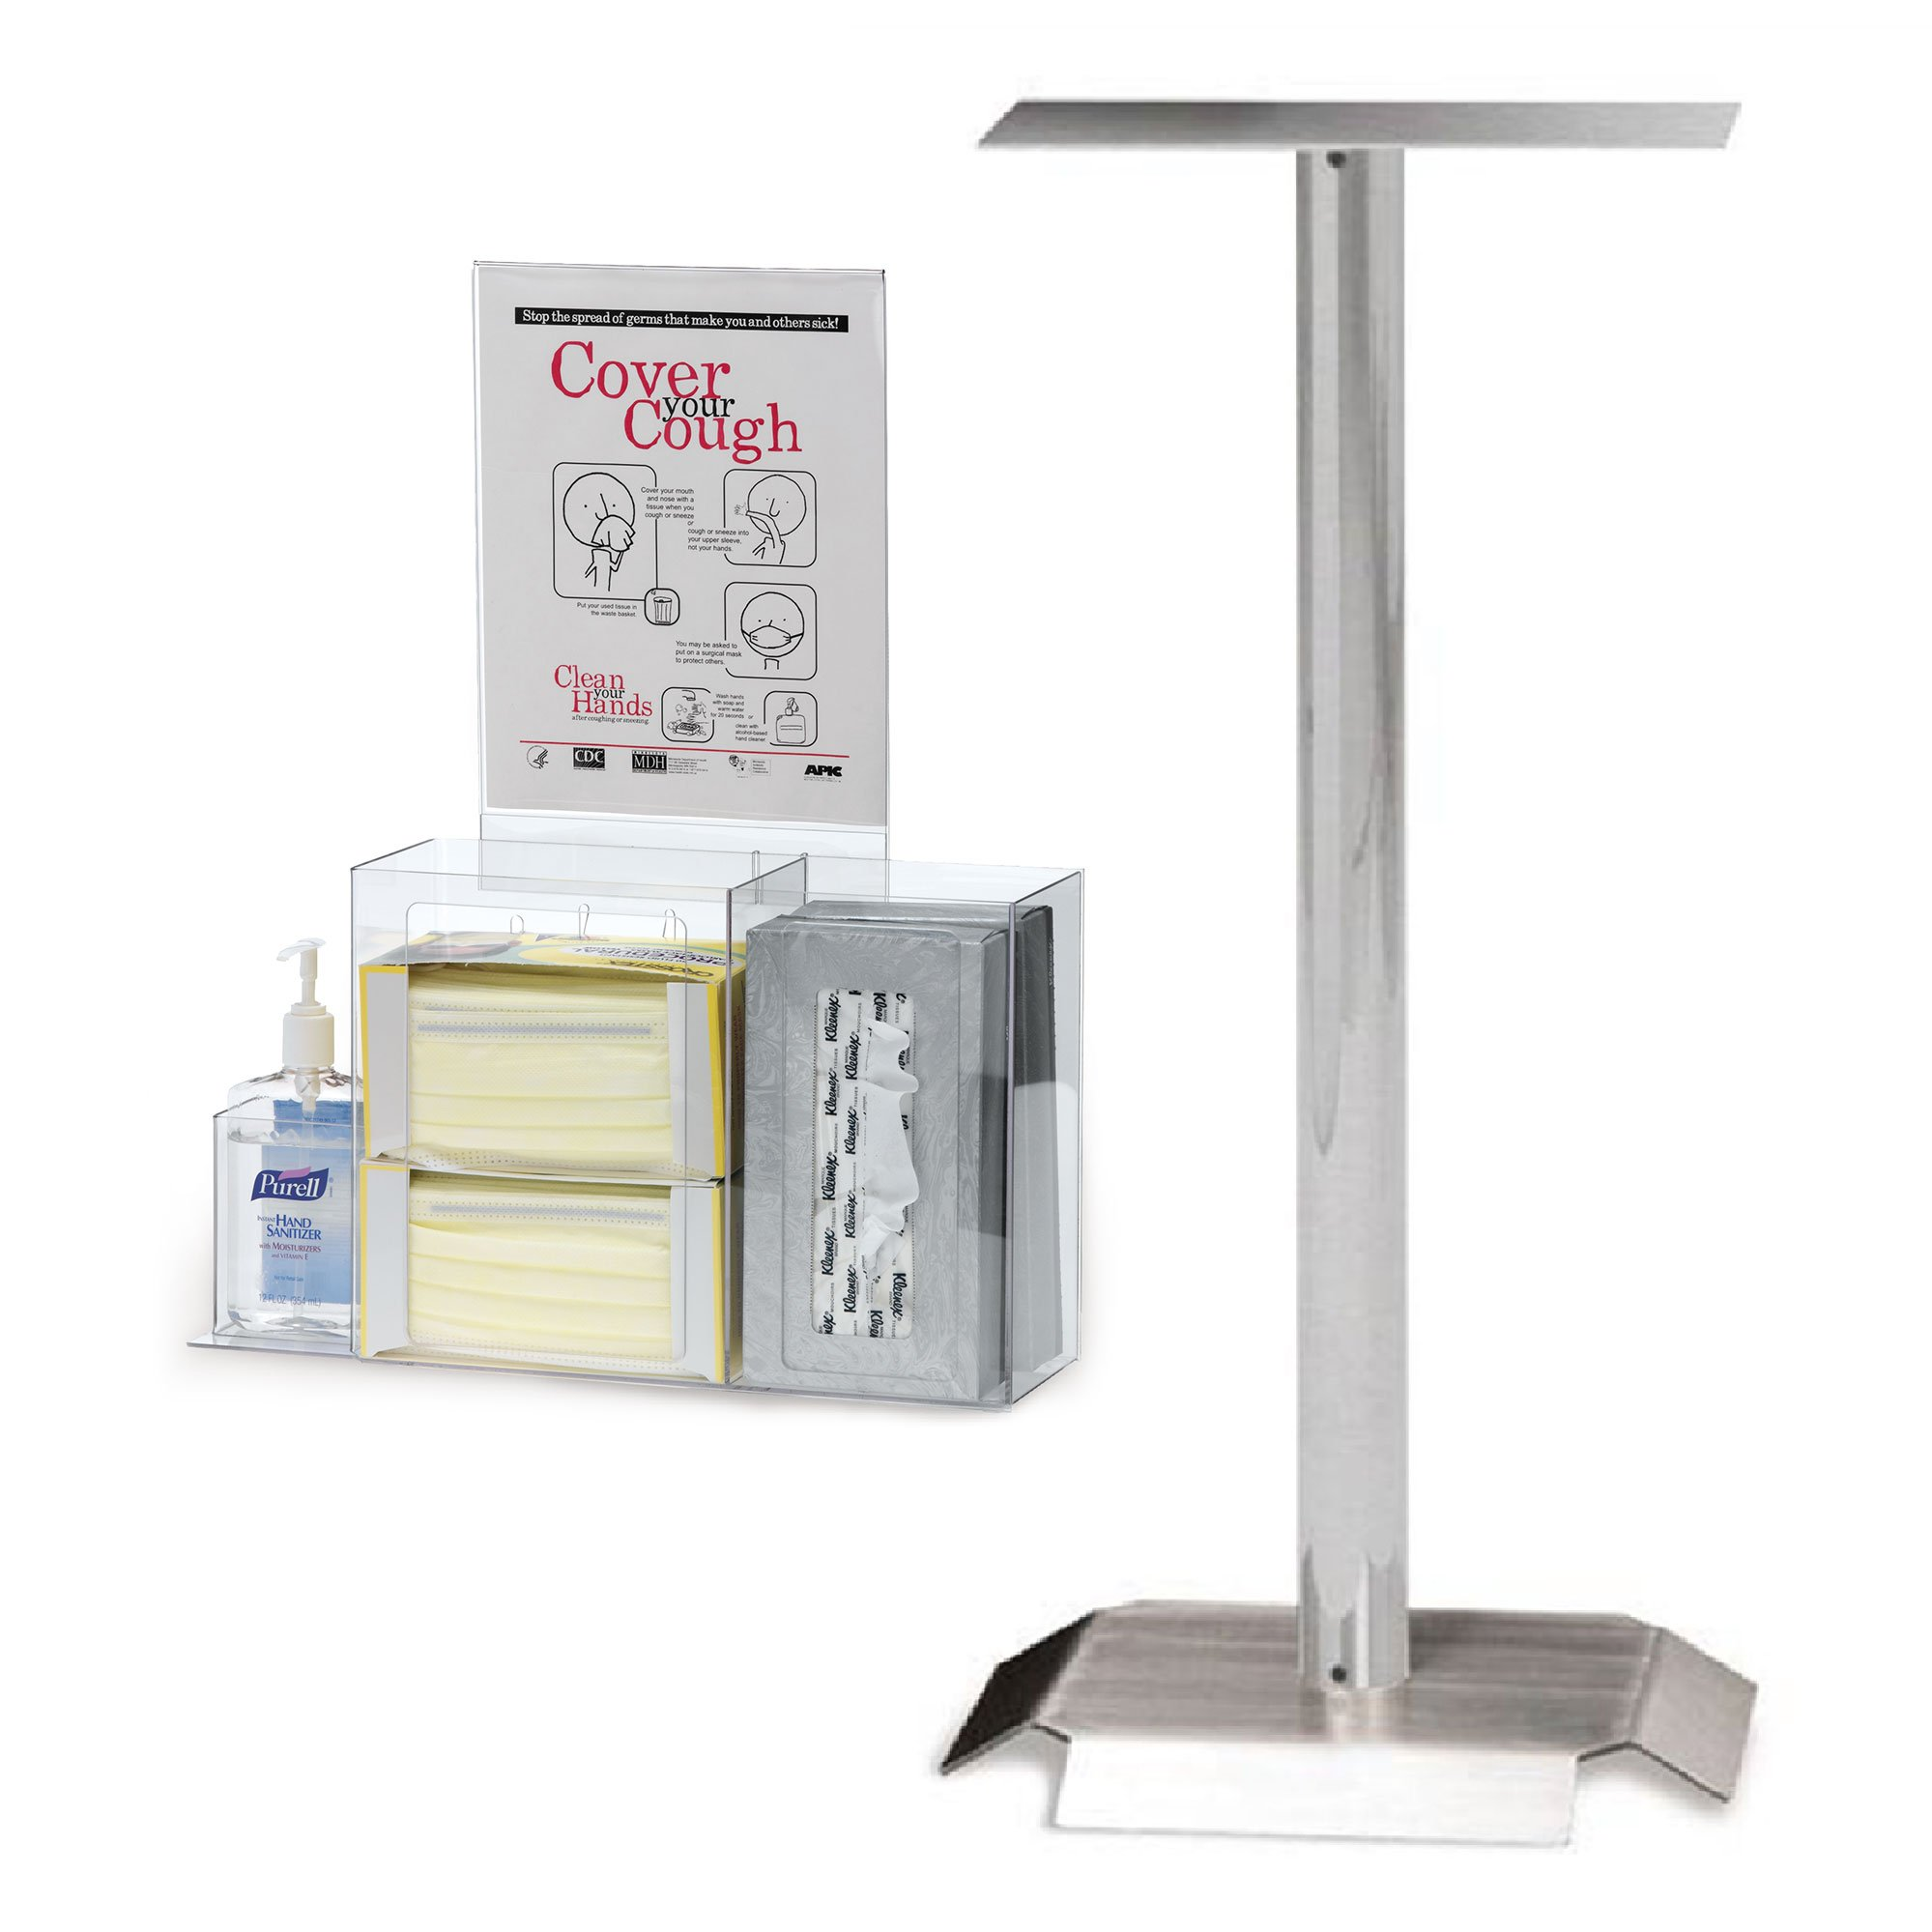 Respiratory Hygiene Station Bundle with Kiosk Stand and Accessories (5 items)